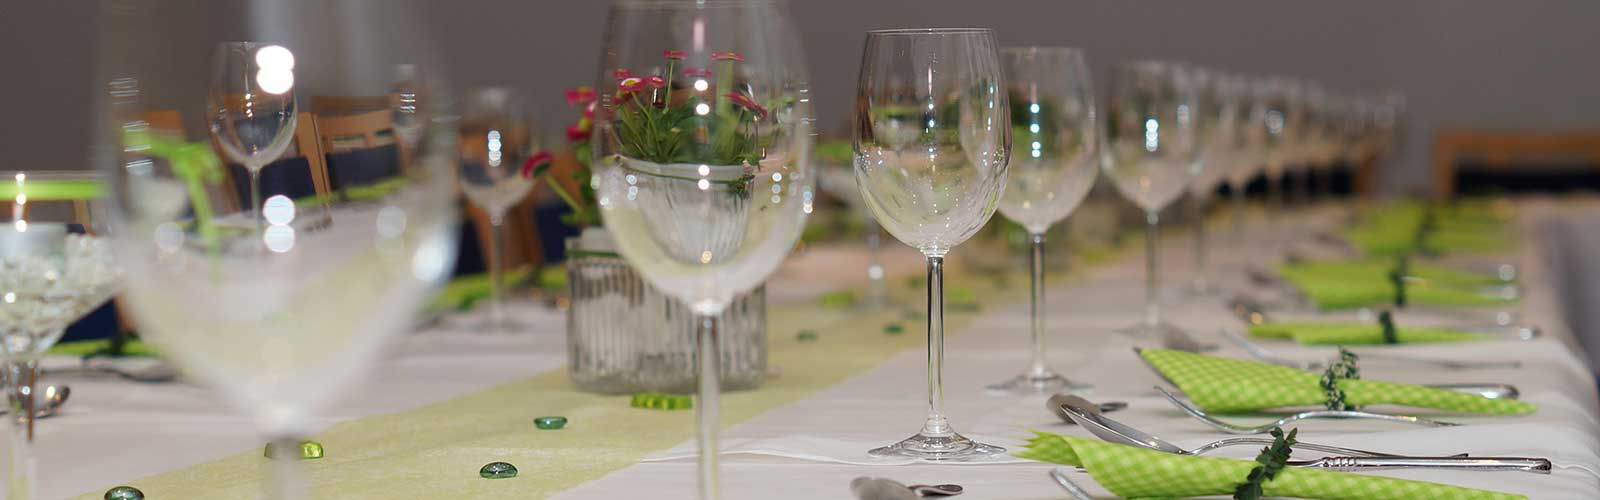 Party rentals in Southwestern Idaho & Eastern Oregon